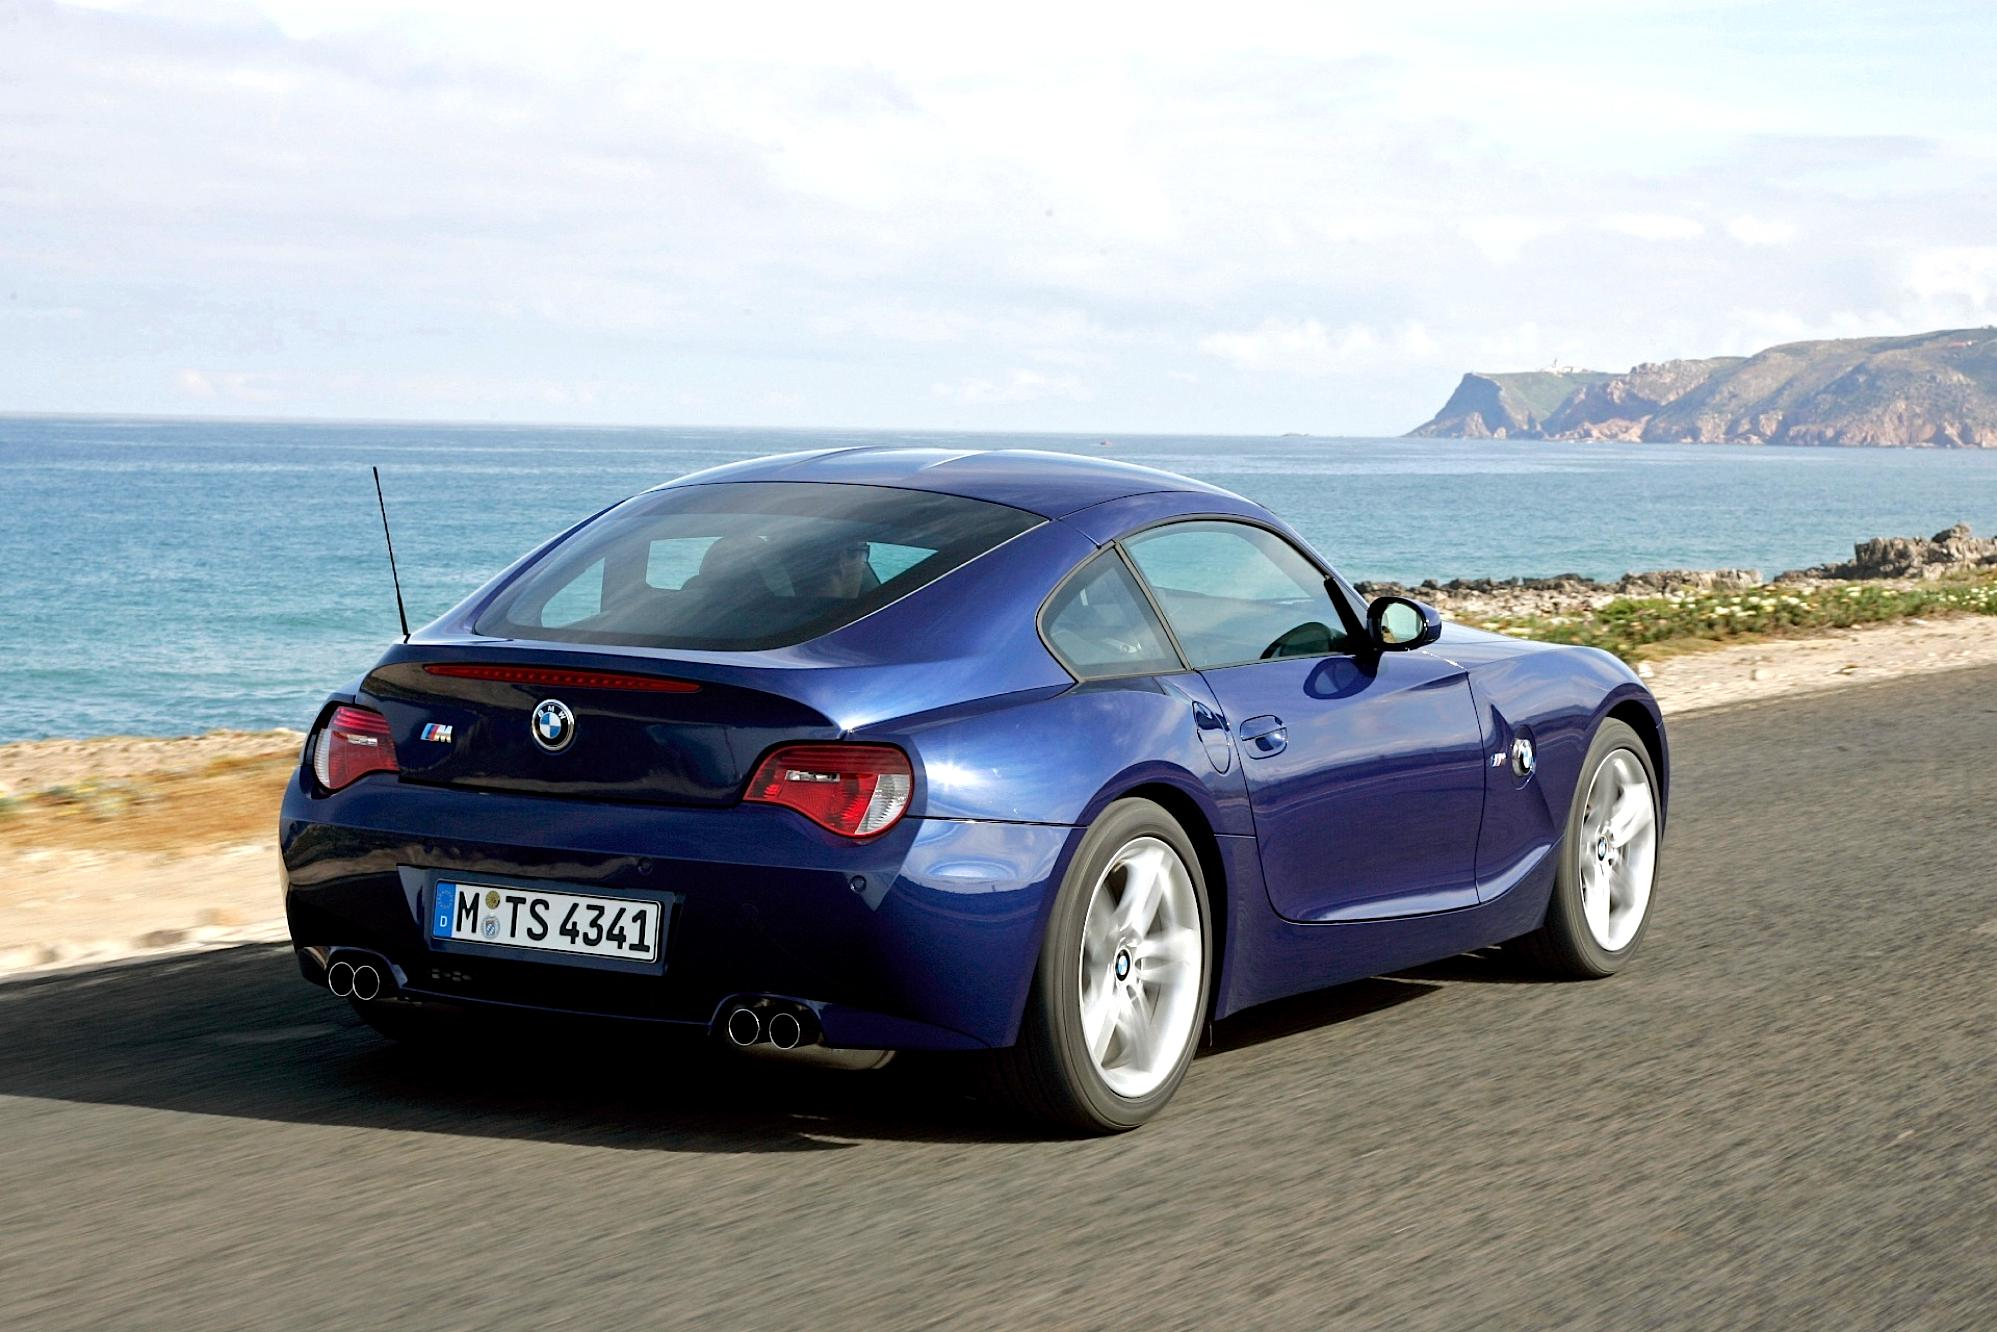 Bmw Z4 M Coupe E86 2006 Photos 21 On Motoimg Com